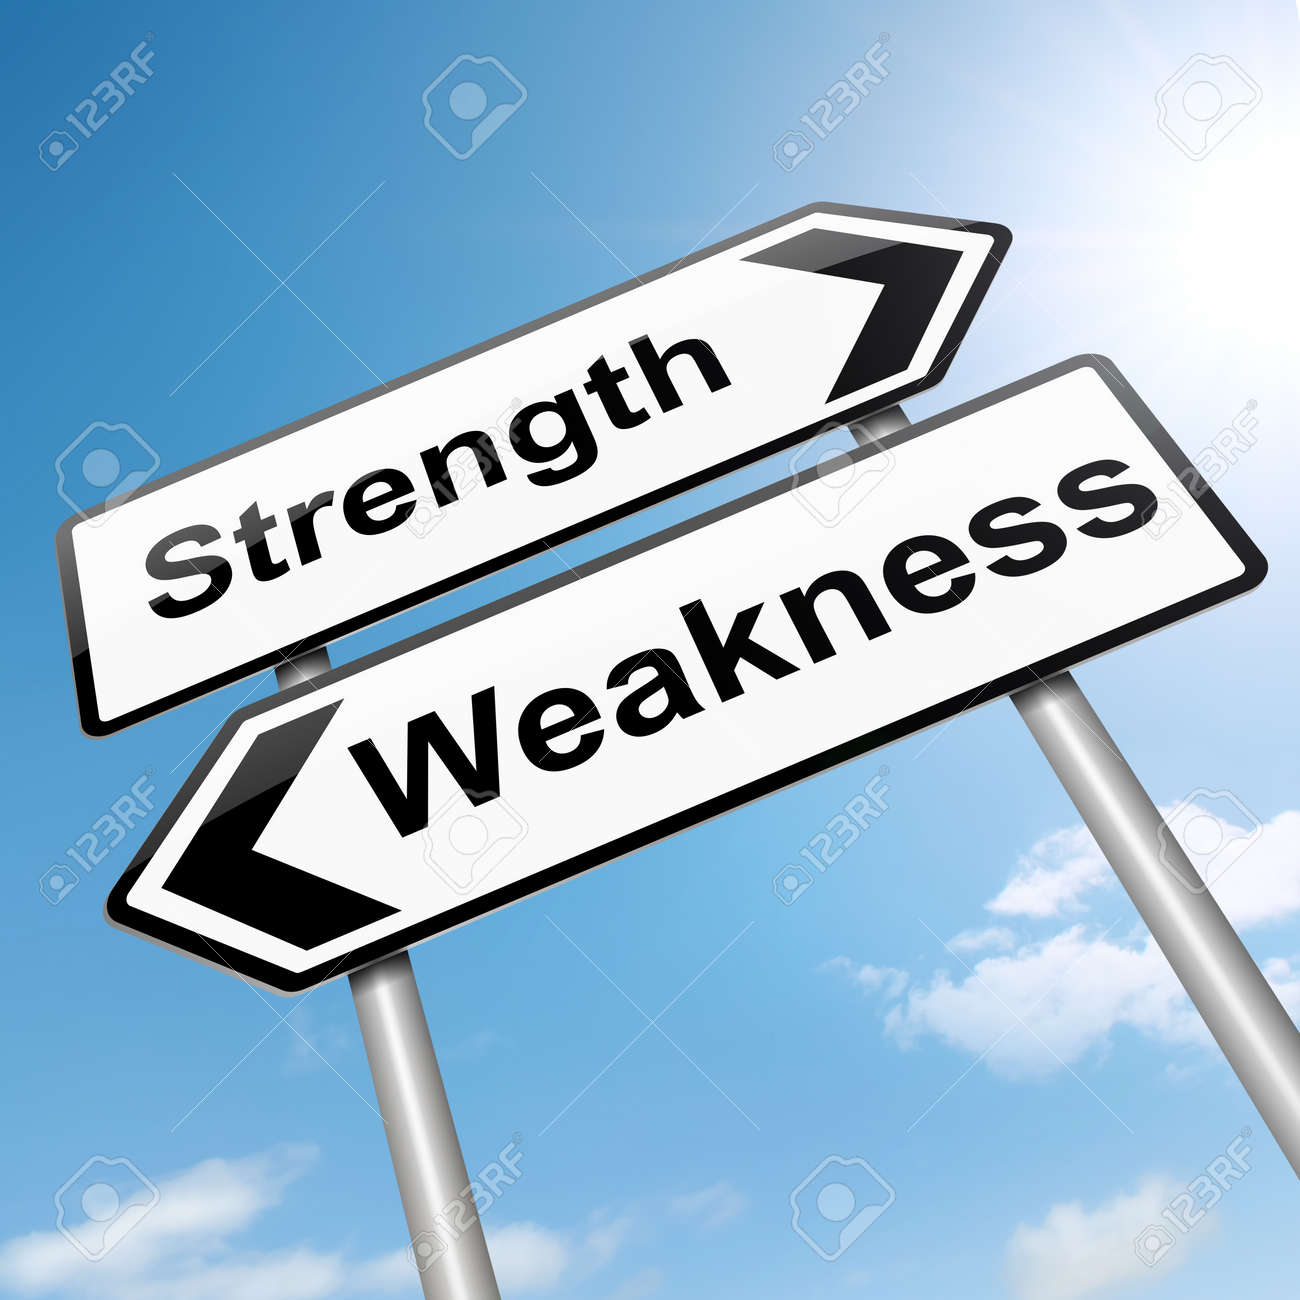 illustration depicting a roadsign a strength and weakness illustration illustration depicting a roadsign a strength and weakness concept sky background